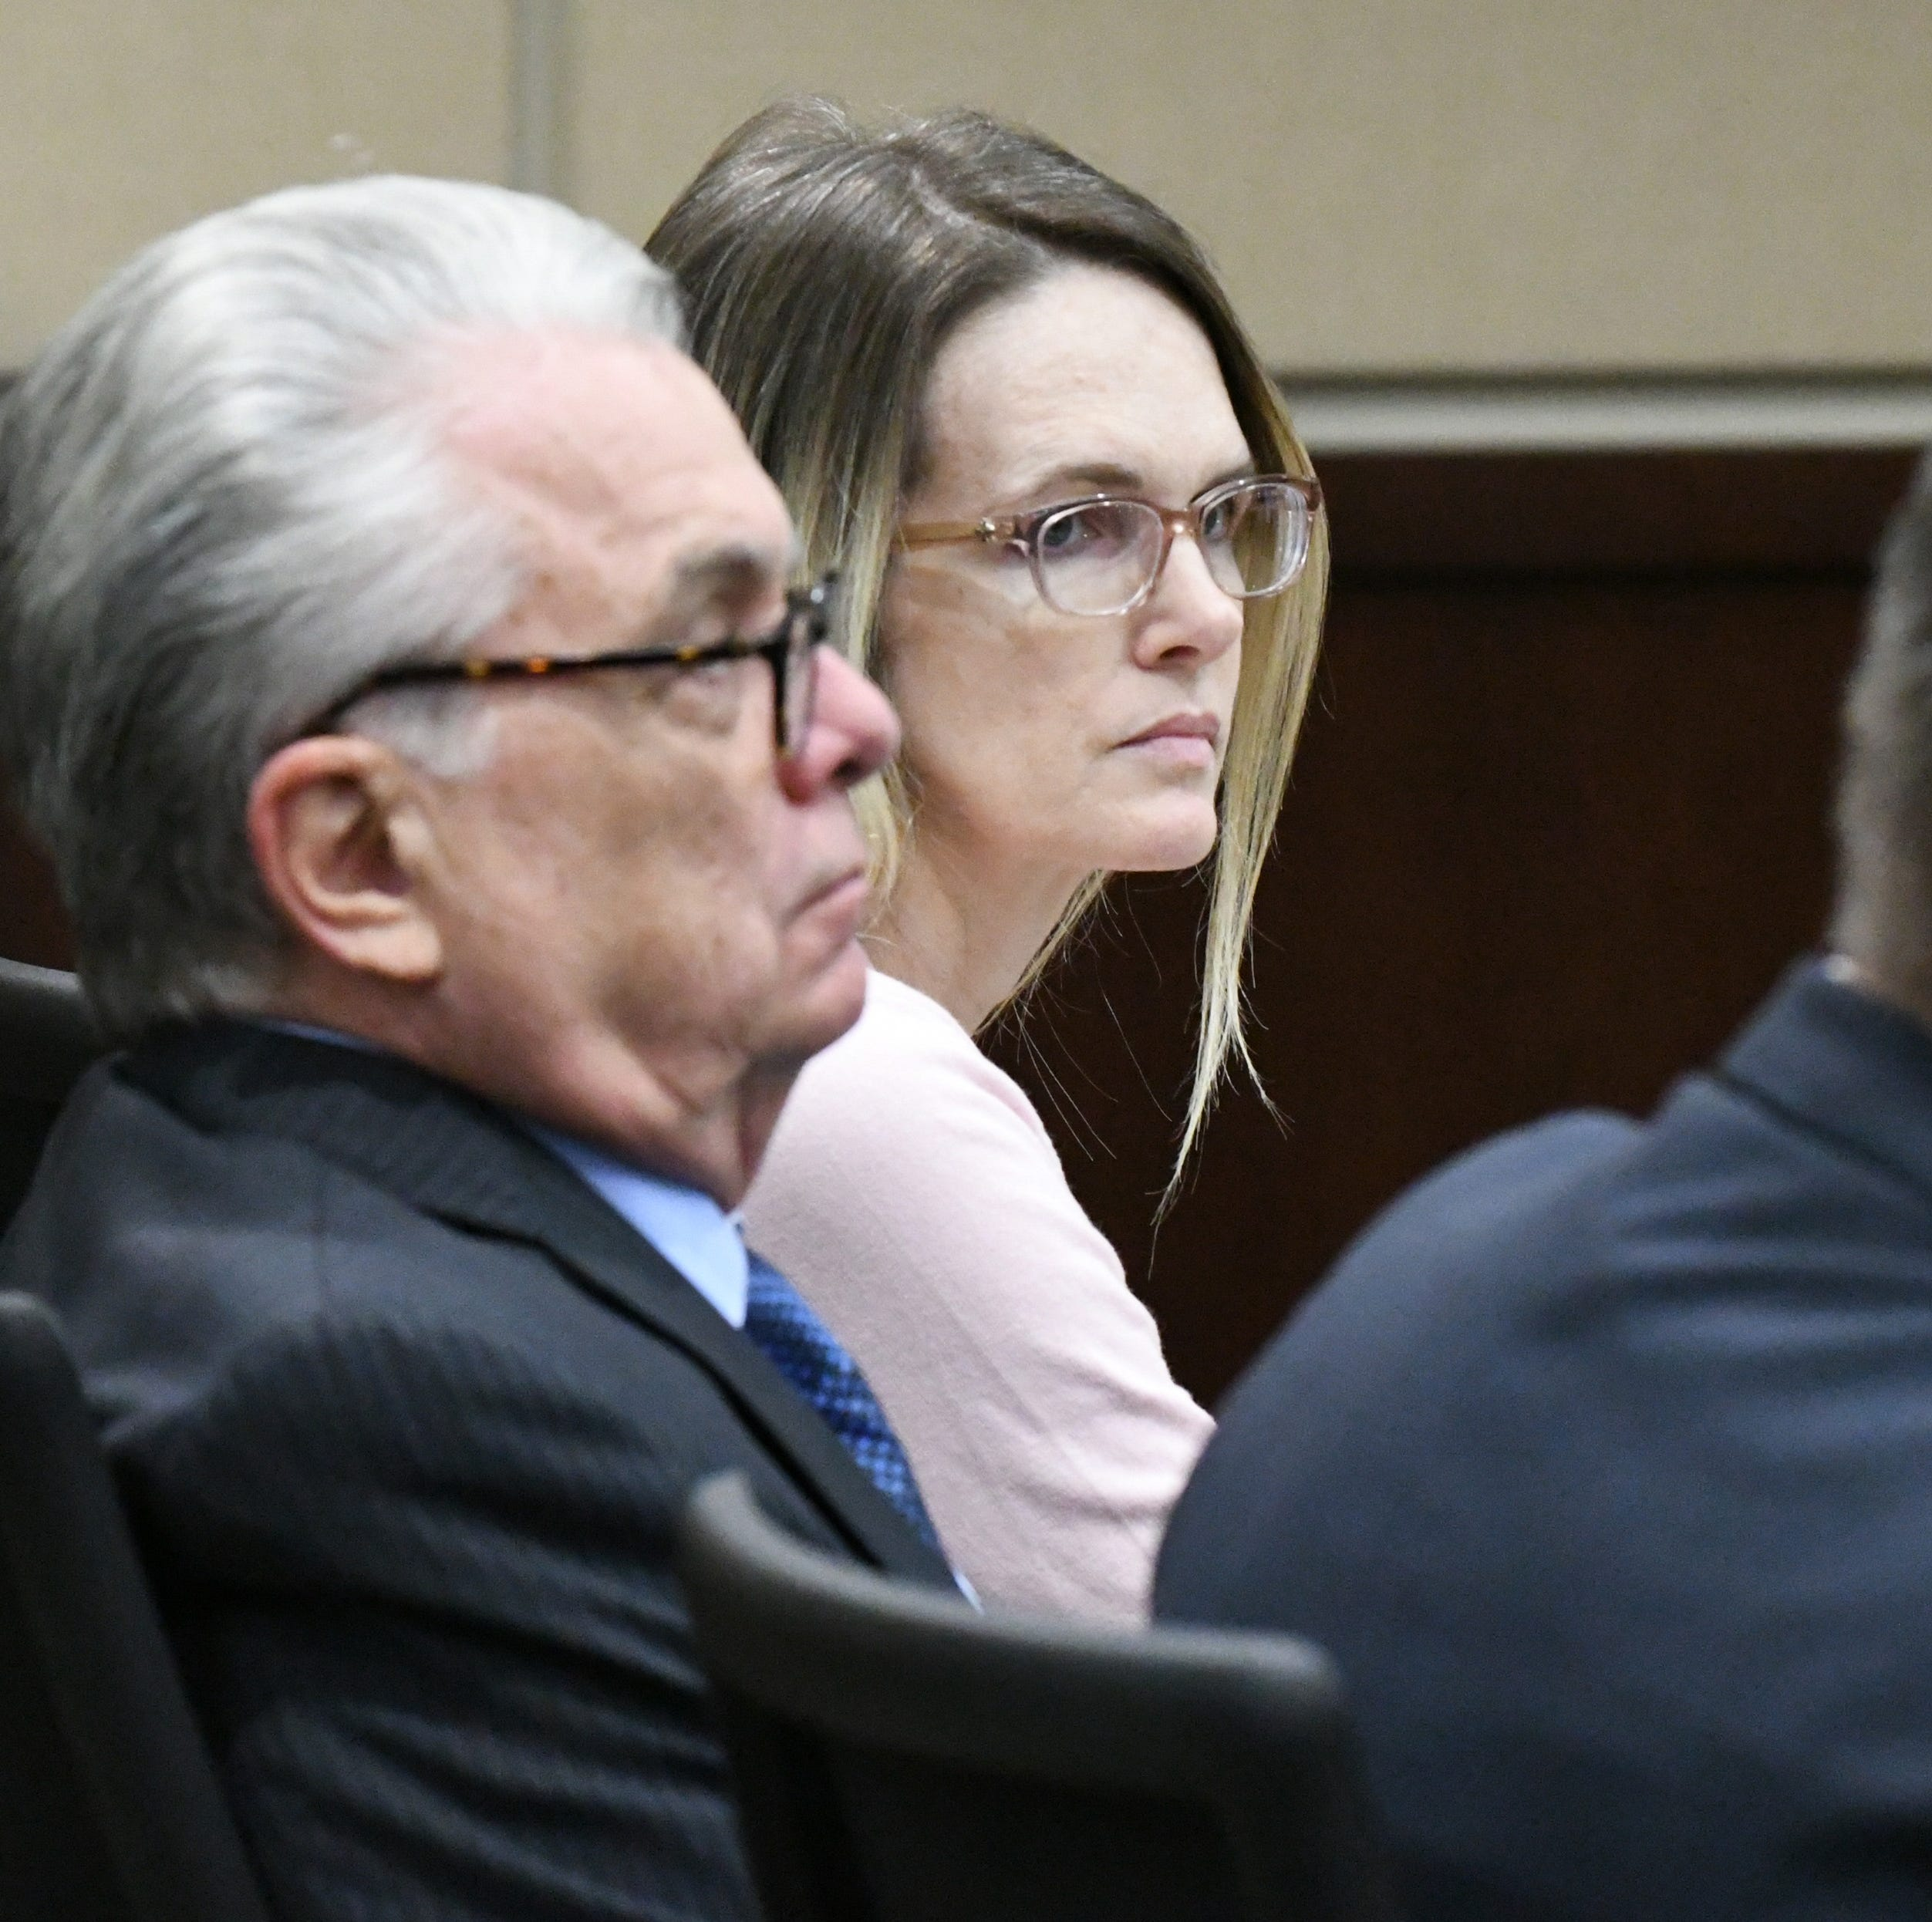 Denise Williams murder trial: Brian Winchester testifies about plans to kill Mike Williams